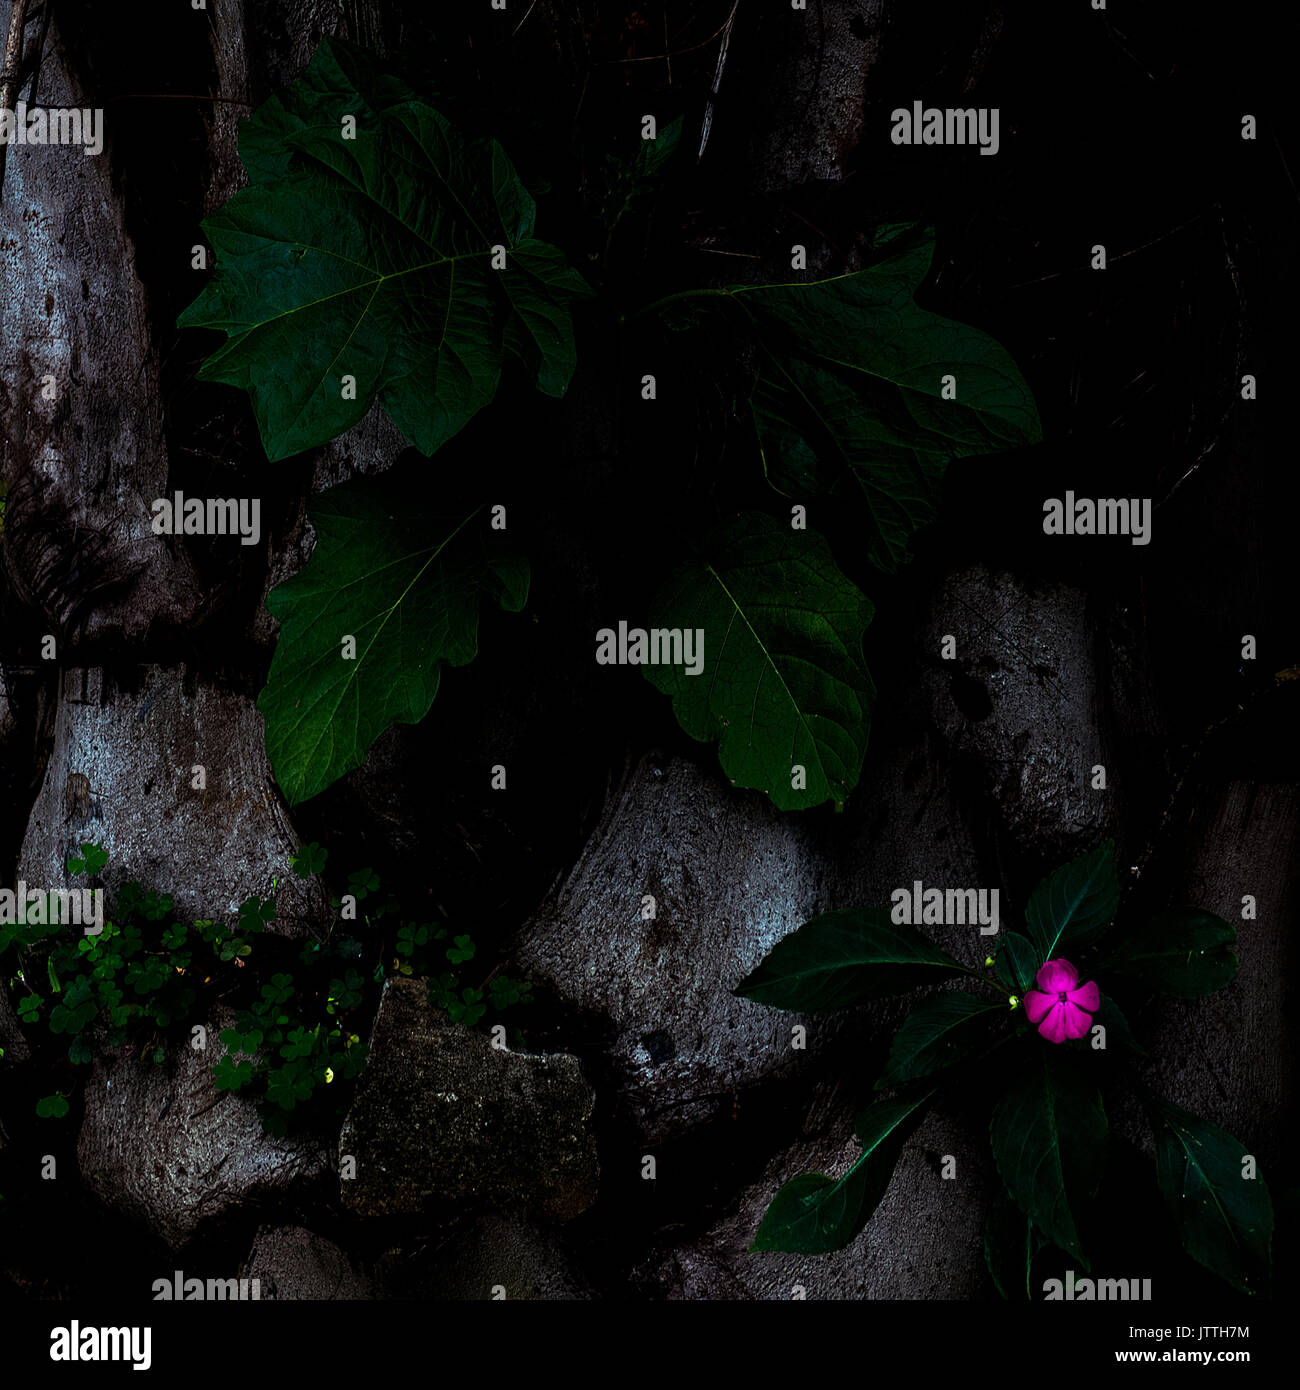 A square format picture of a single pink flower with dark green leaves and stones - background - abstract - Stock Image